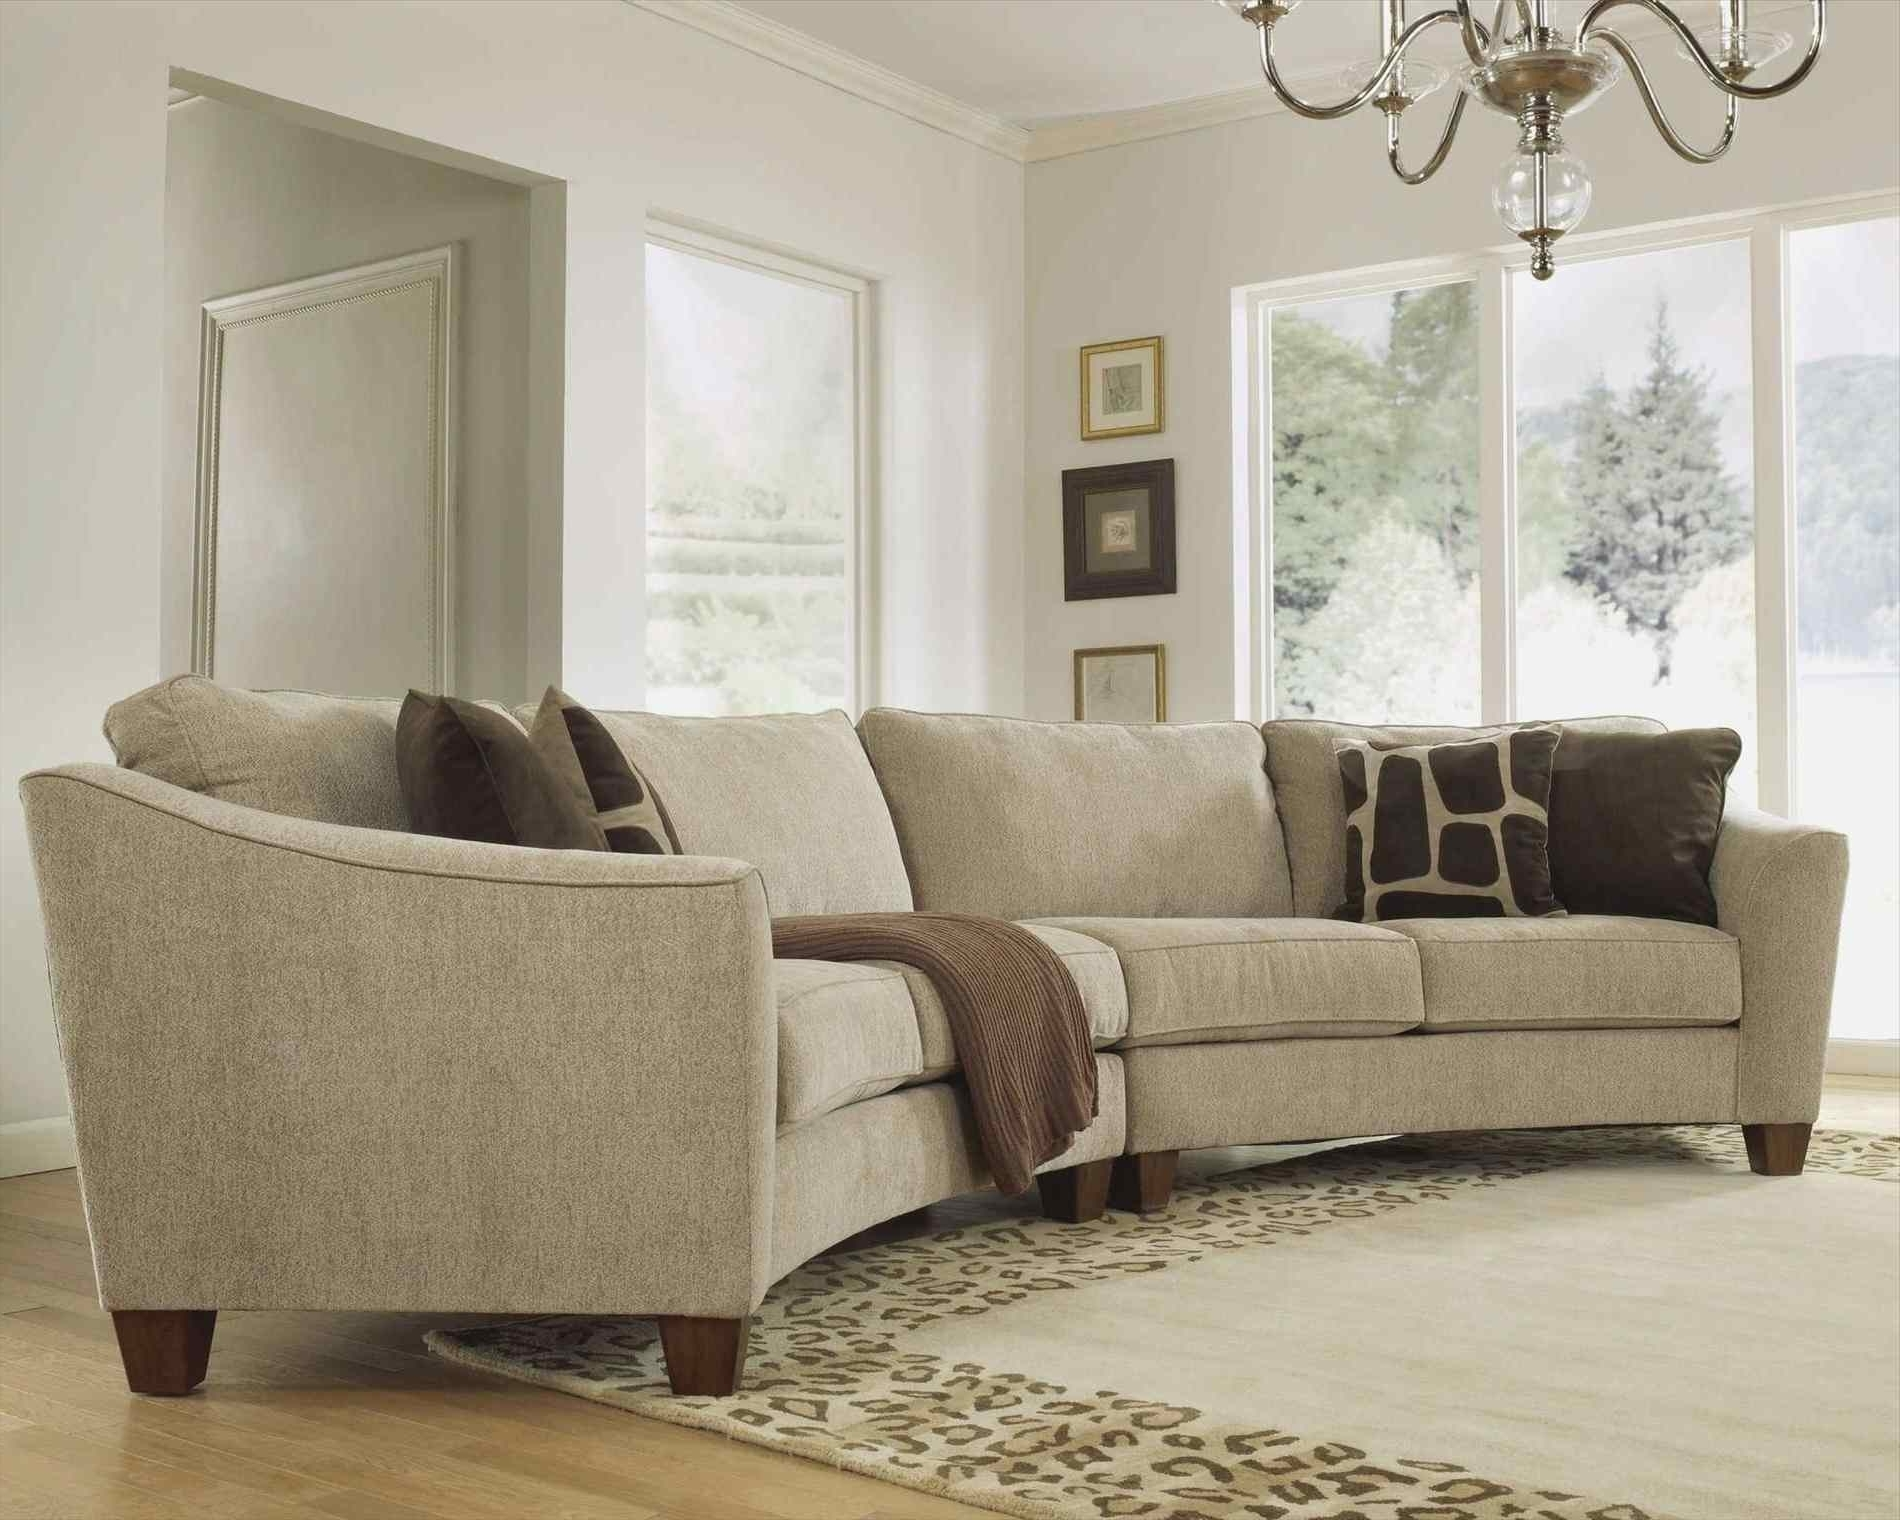 Rounded Corner Sectional Sofas Inside Favorite Couch : Interior Lovely Round Corner Couch Curved Sectional Sofa (View 16 of 20)